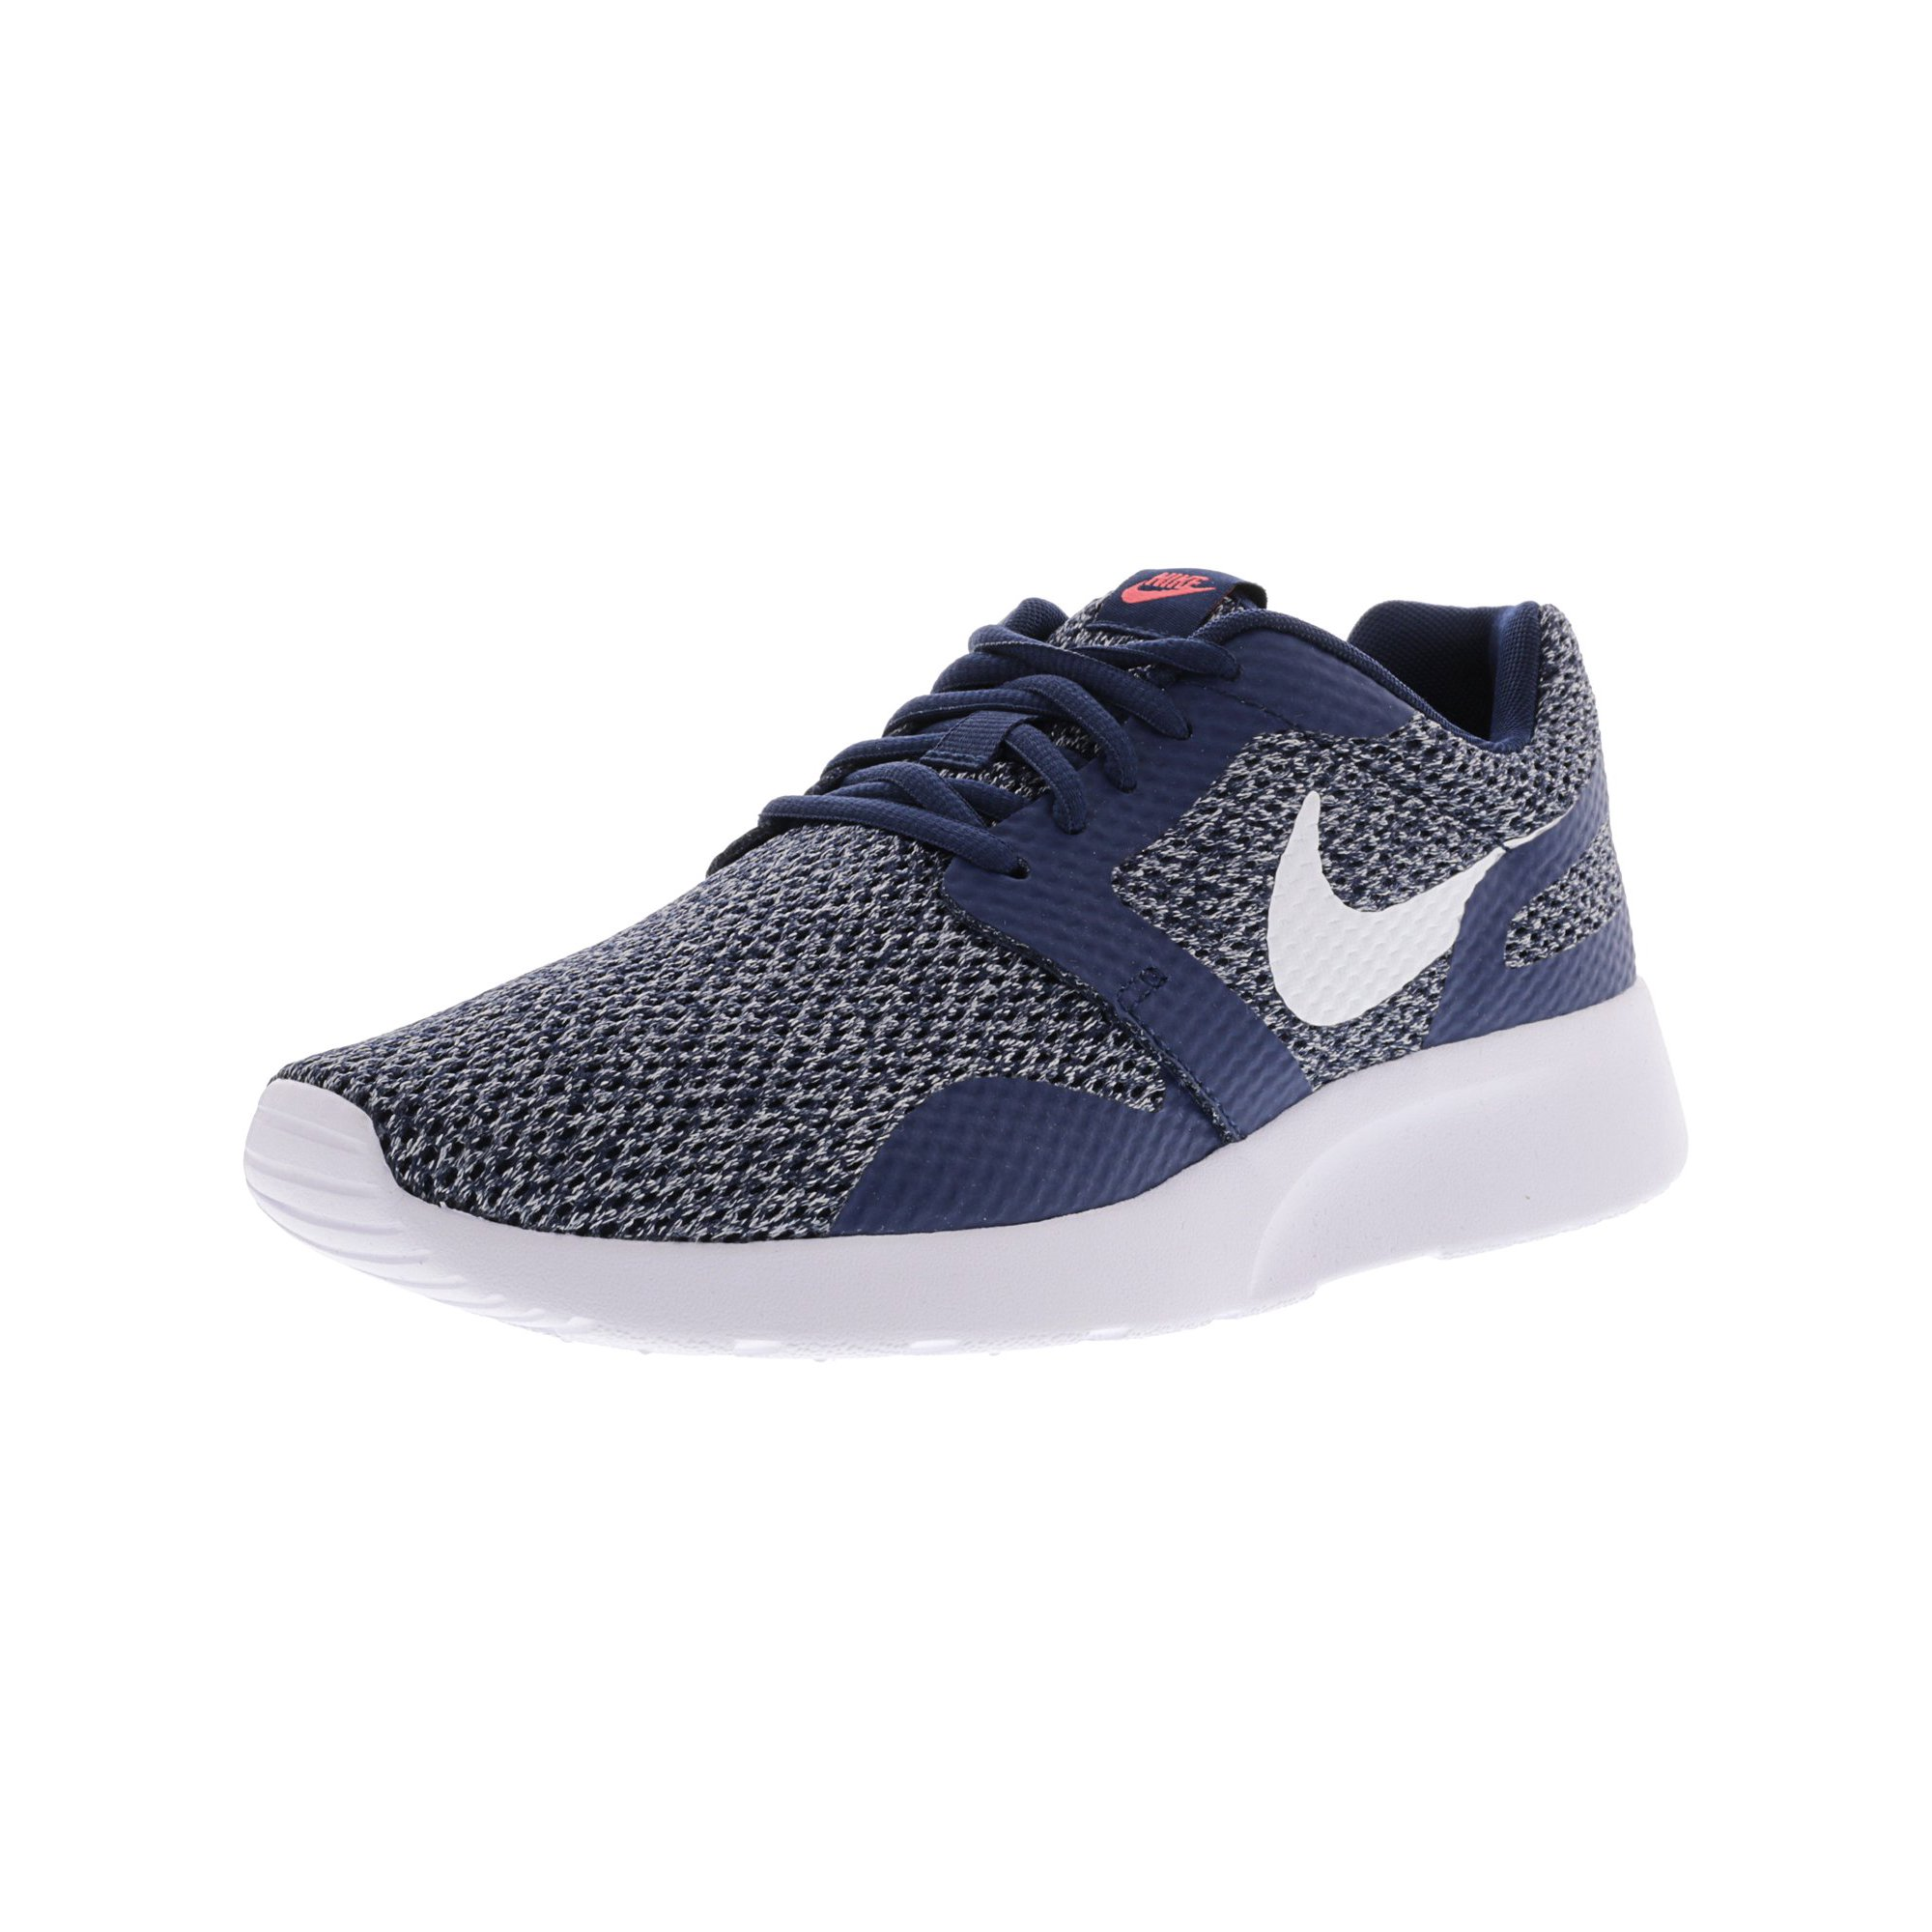 quality design 0c09a 5028e Nike Women s Kaishi Ns Dark Sky Blue   Persian Violet Ankle-High Running  Shoe - 7M   Walmart Canada